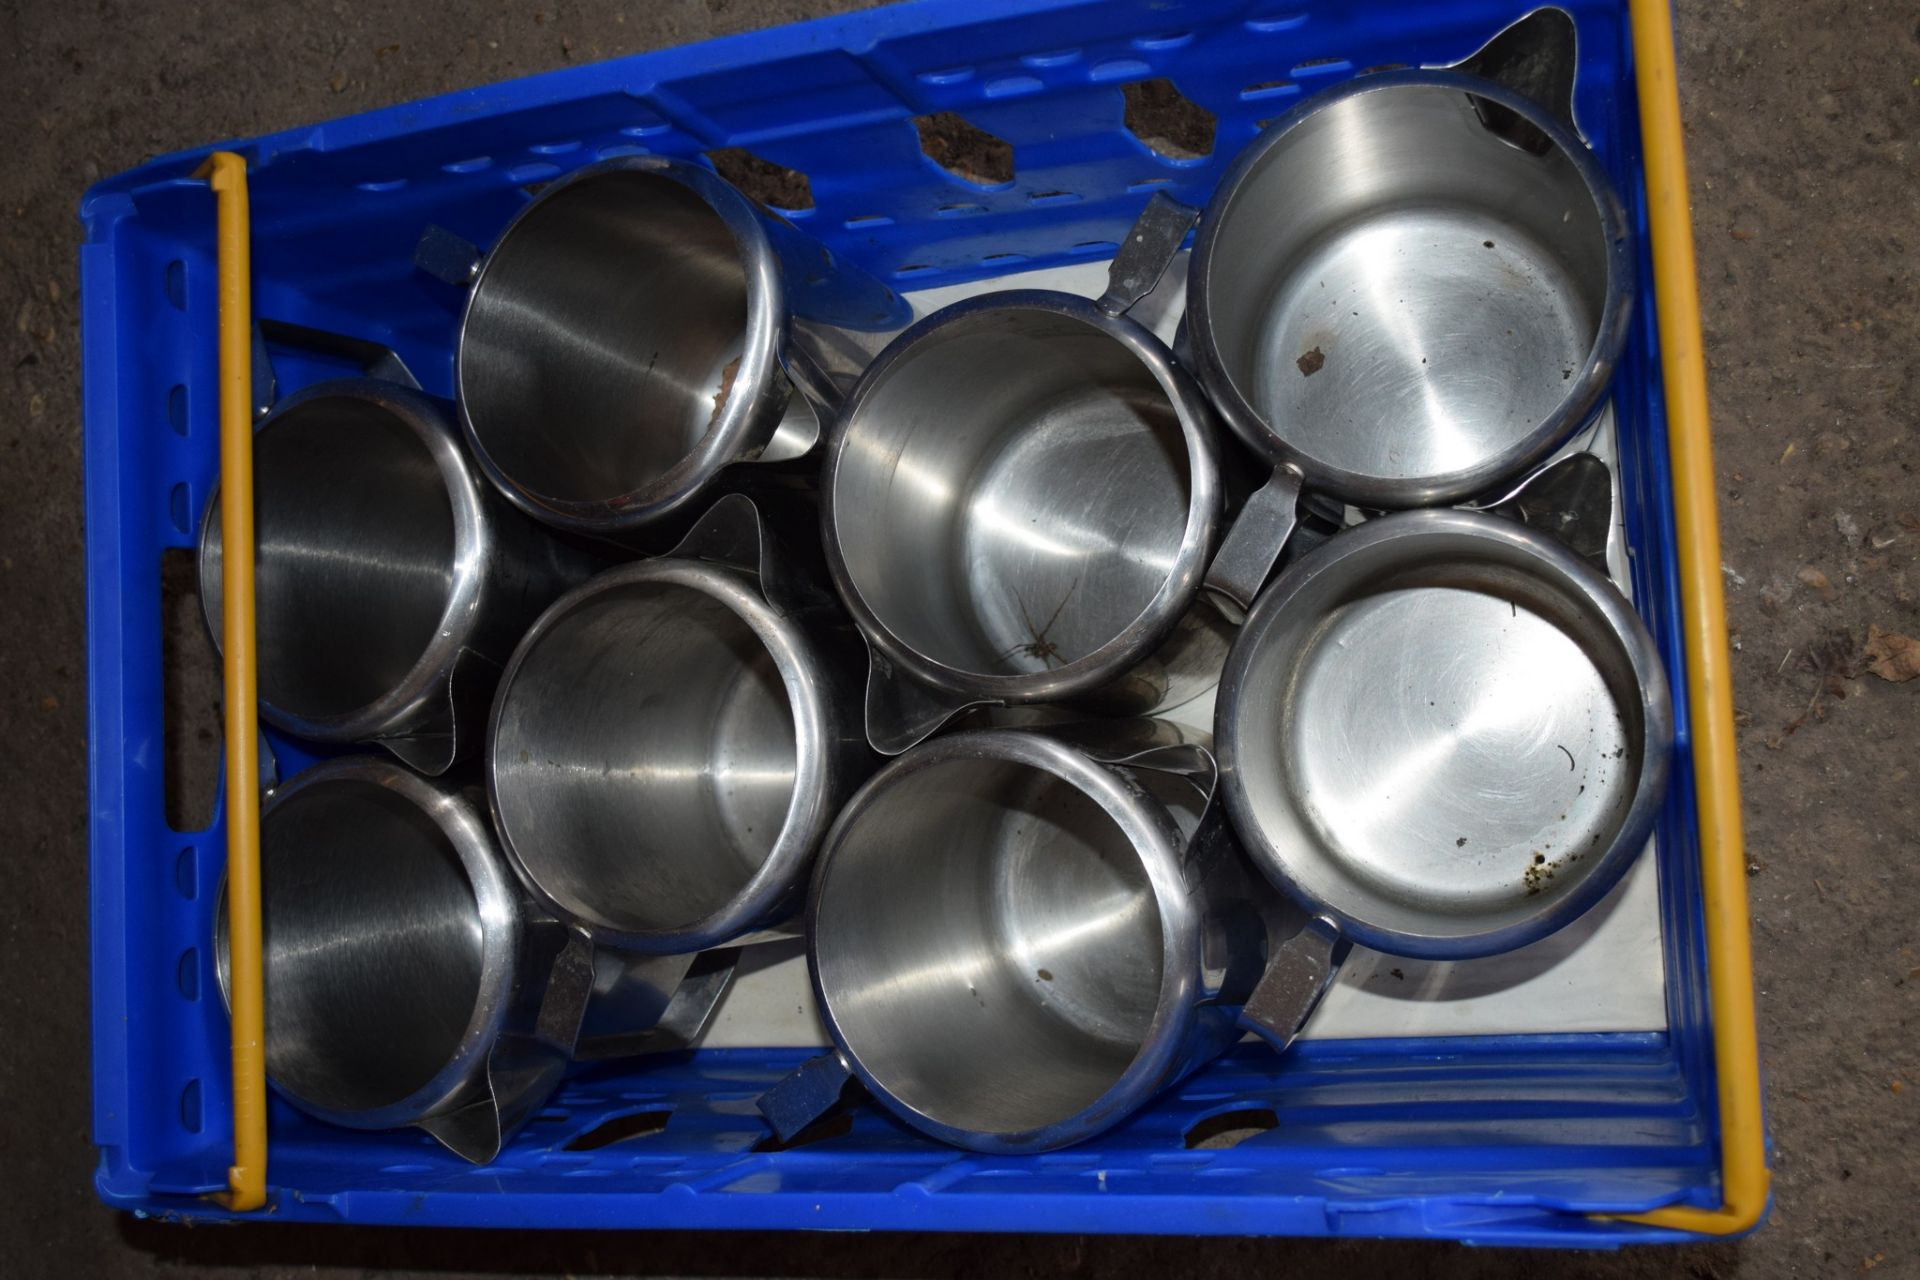 Crate: 8 large stainless steel Jugs.